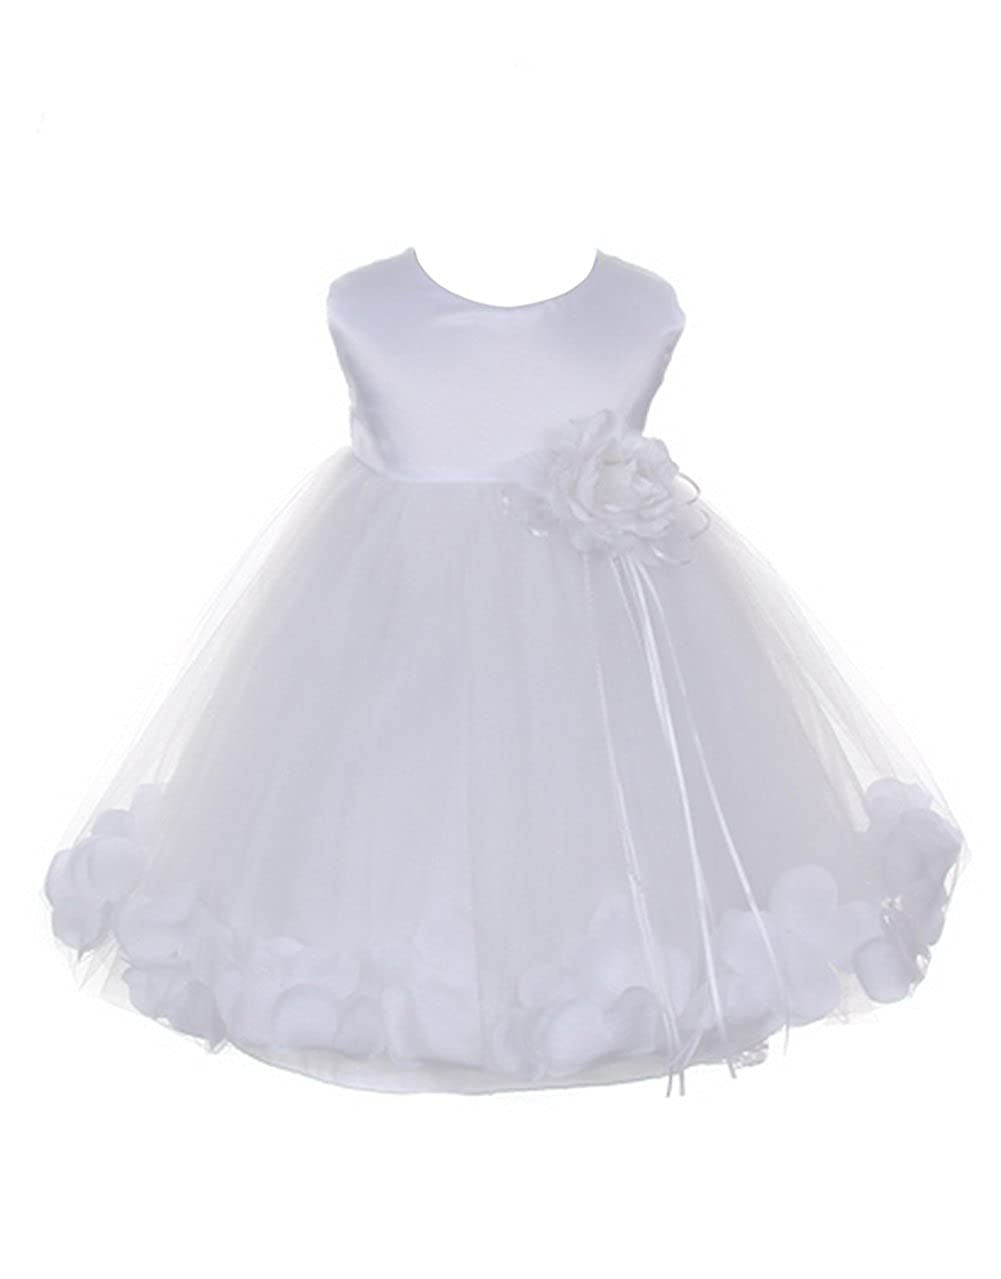 22a5b312b4b Amazon.com  Petals White Satin Satin Tulle Wedding Flower Girl Dress ...